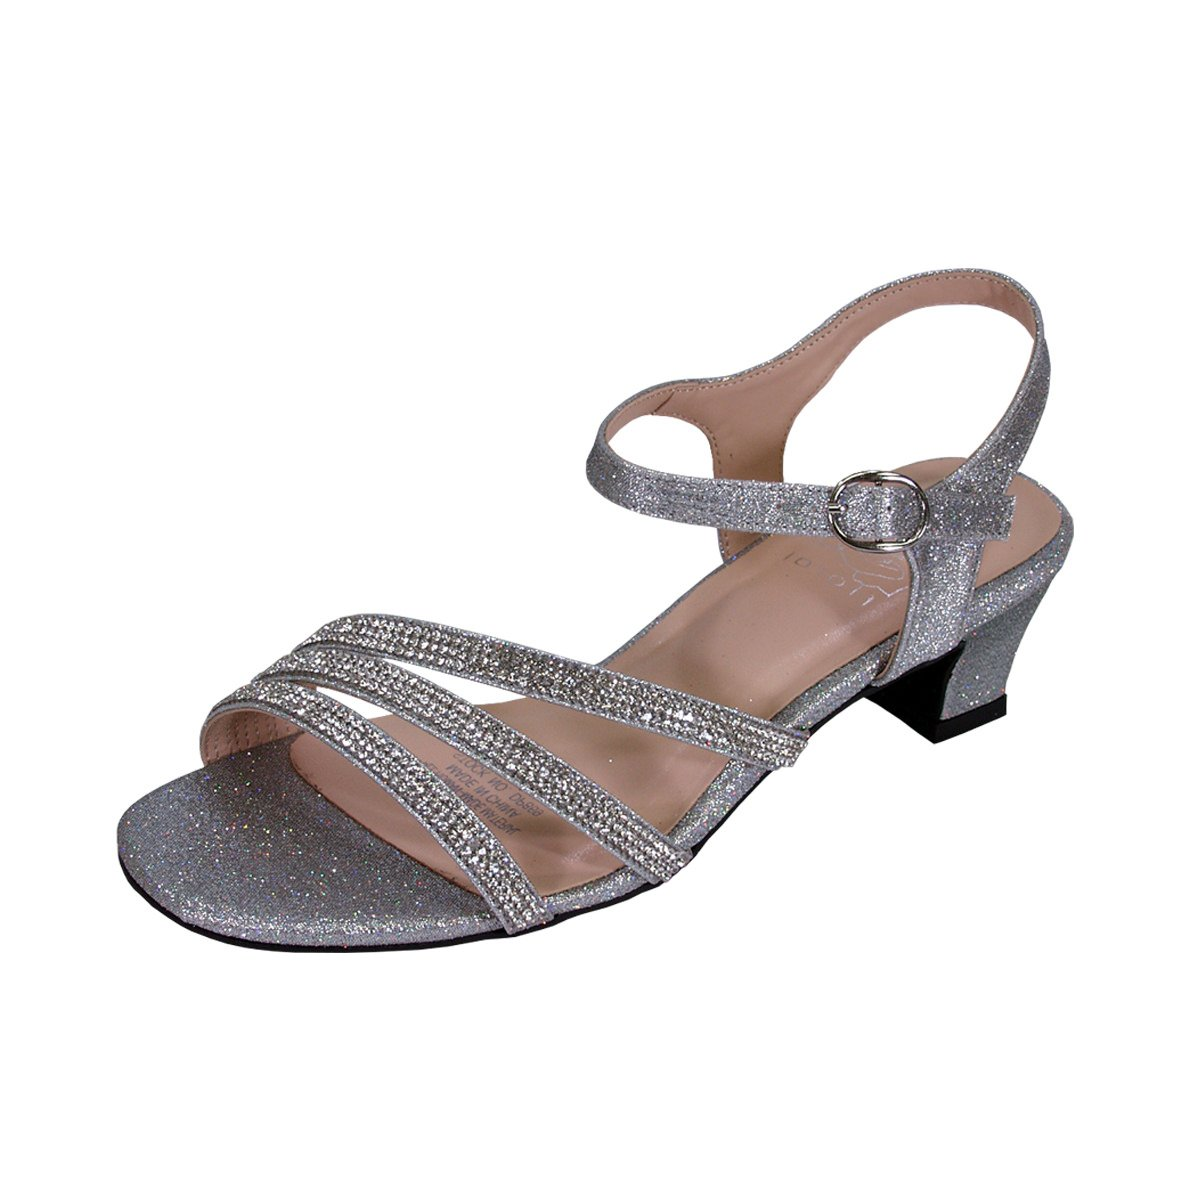 Floral Jenna Women Extra Wide Width Glittery Rhinestone Upper Straps Party Heeled Slingback Sandals Silver 8